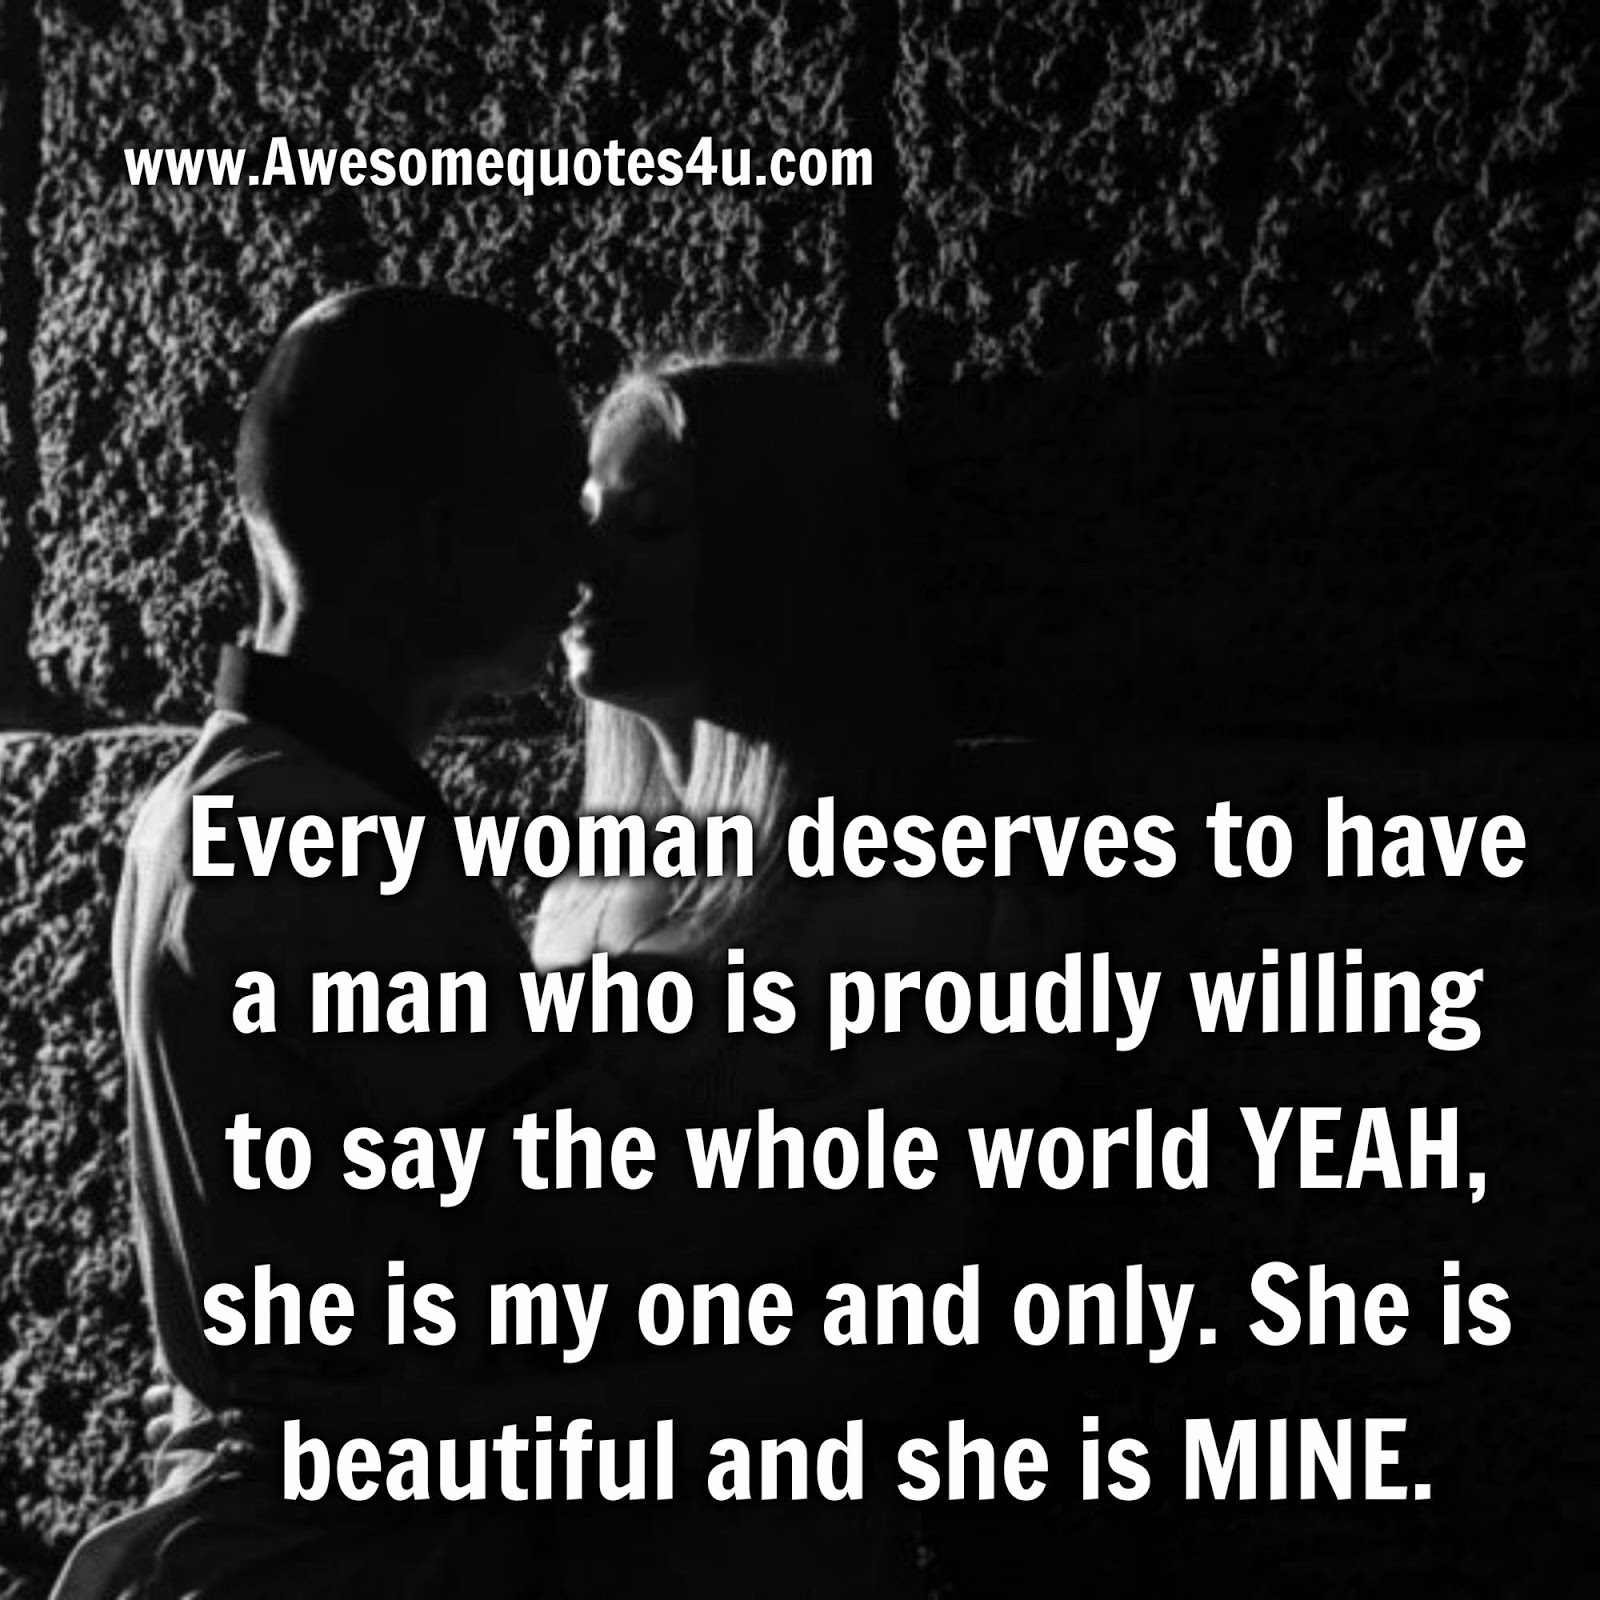 Awesome Quotes: What Every Woman Deserve?